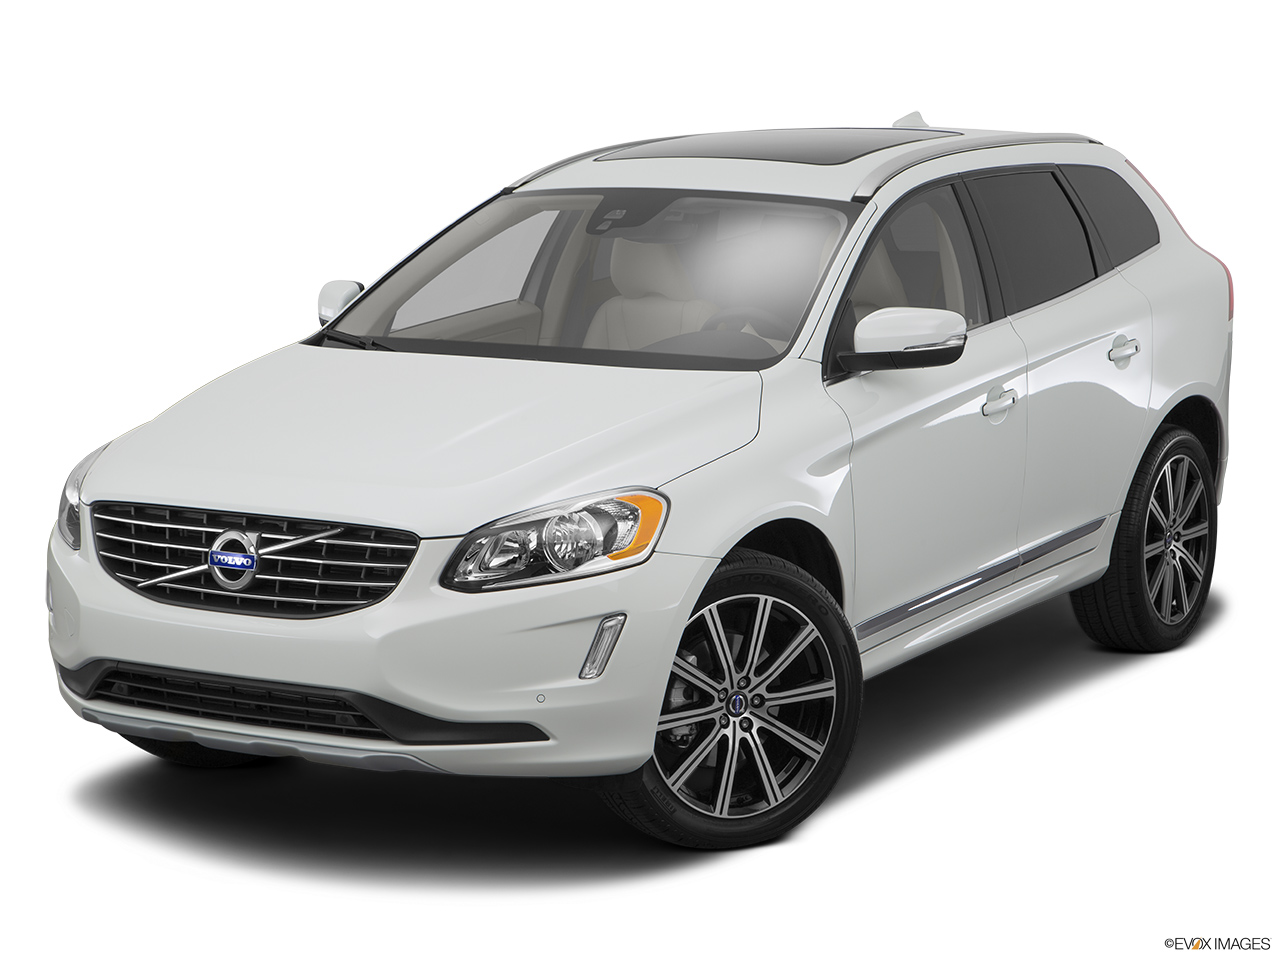 2016 Volvo Xc60 Prices In Bahrain Gulf Specs Amp Reviews